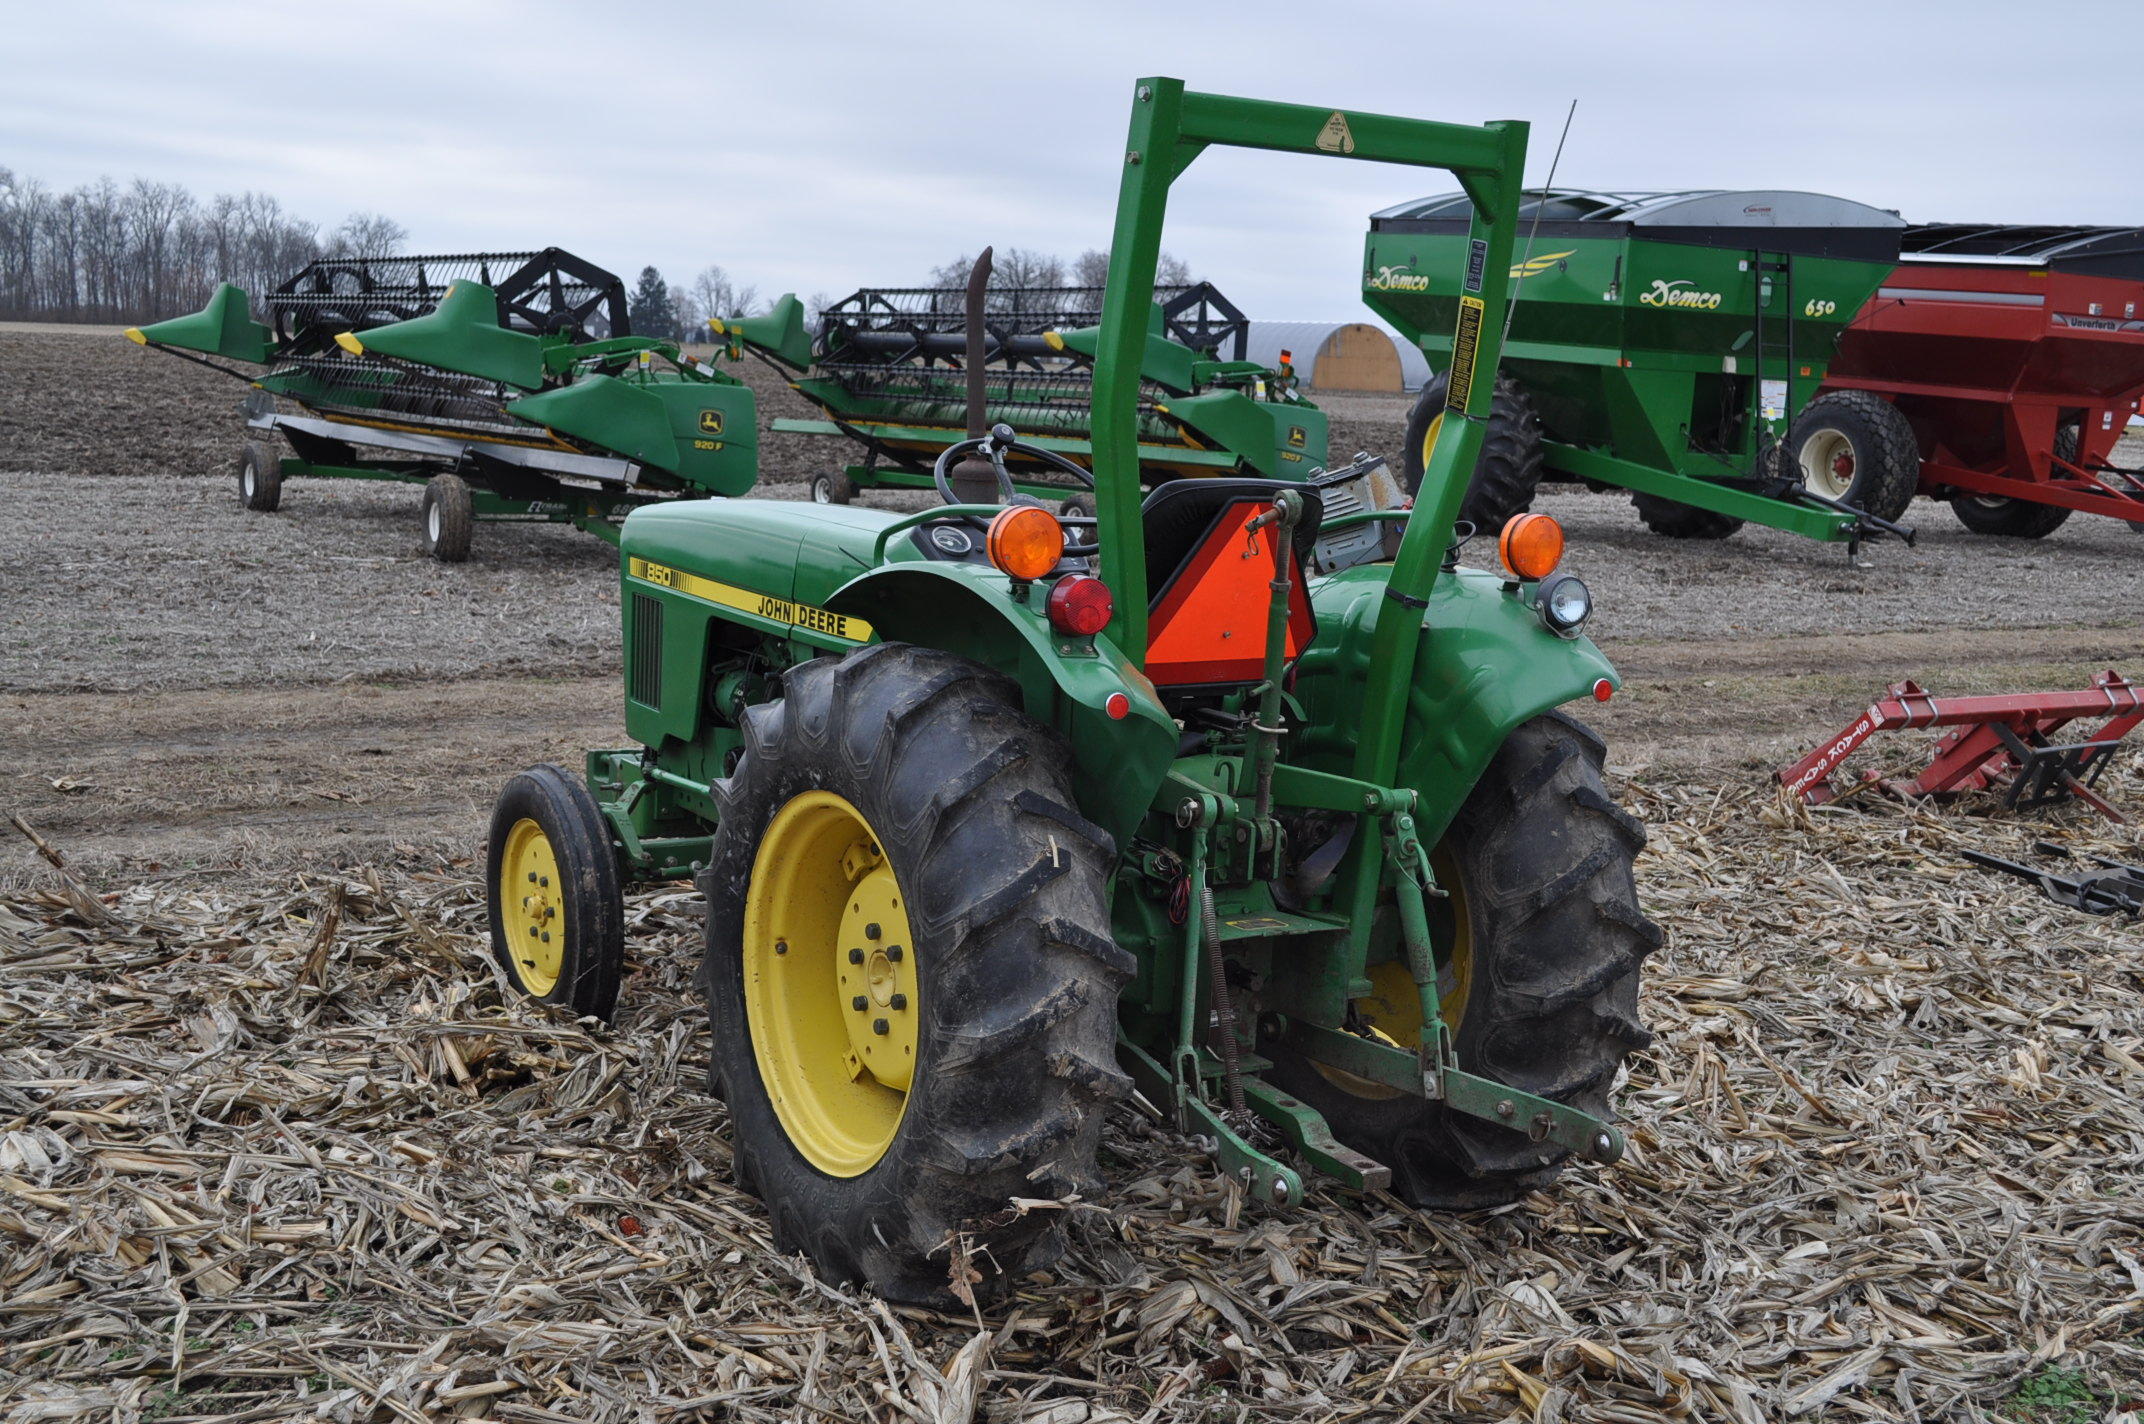 John Deere 850 utility tractor, diesel, 12.4-24 rear, 5.00-16 front, 2 hyd remotes, 3 pt, 540 pto, - Image 2 of 13